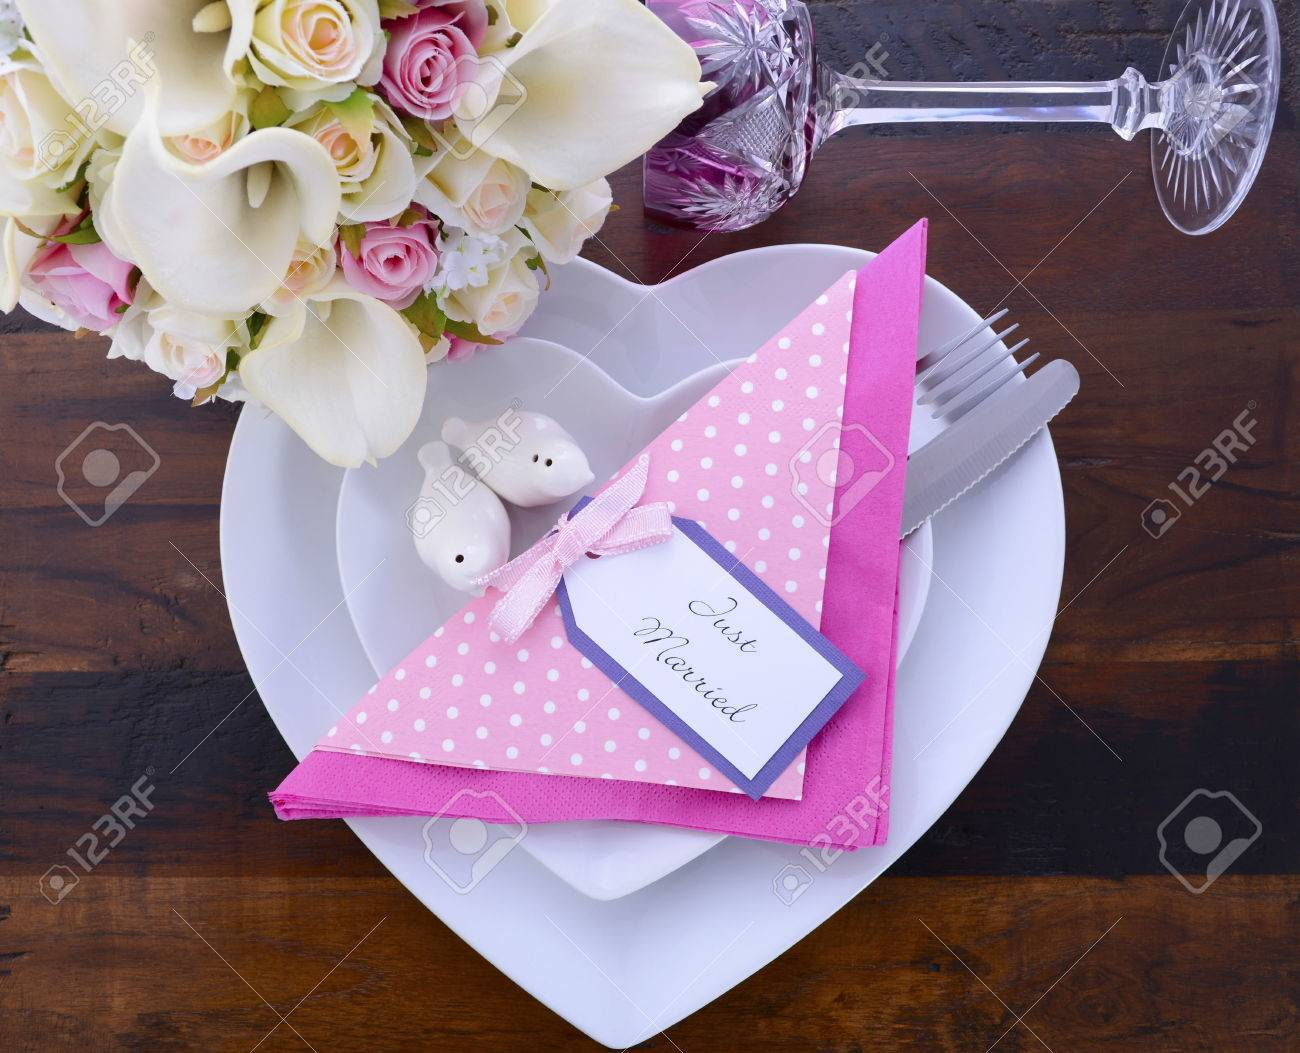 Pink Theme Wedding Table Place Setting With White Heart Shape ...